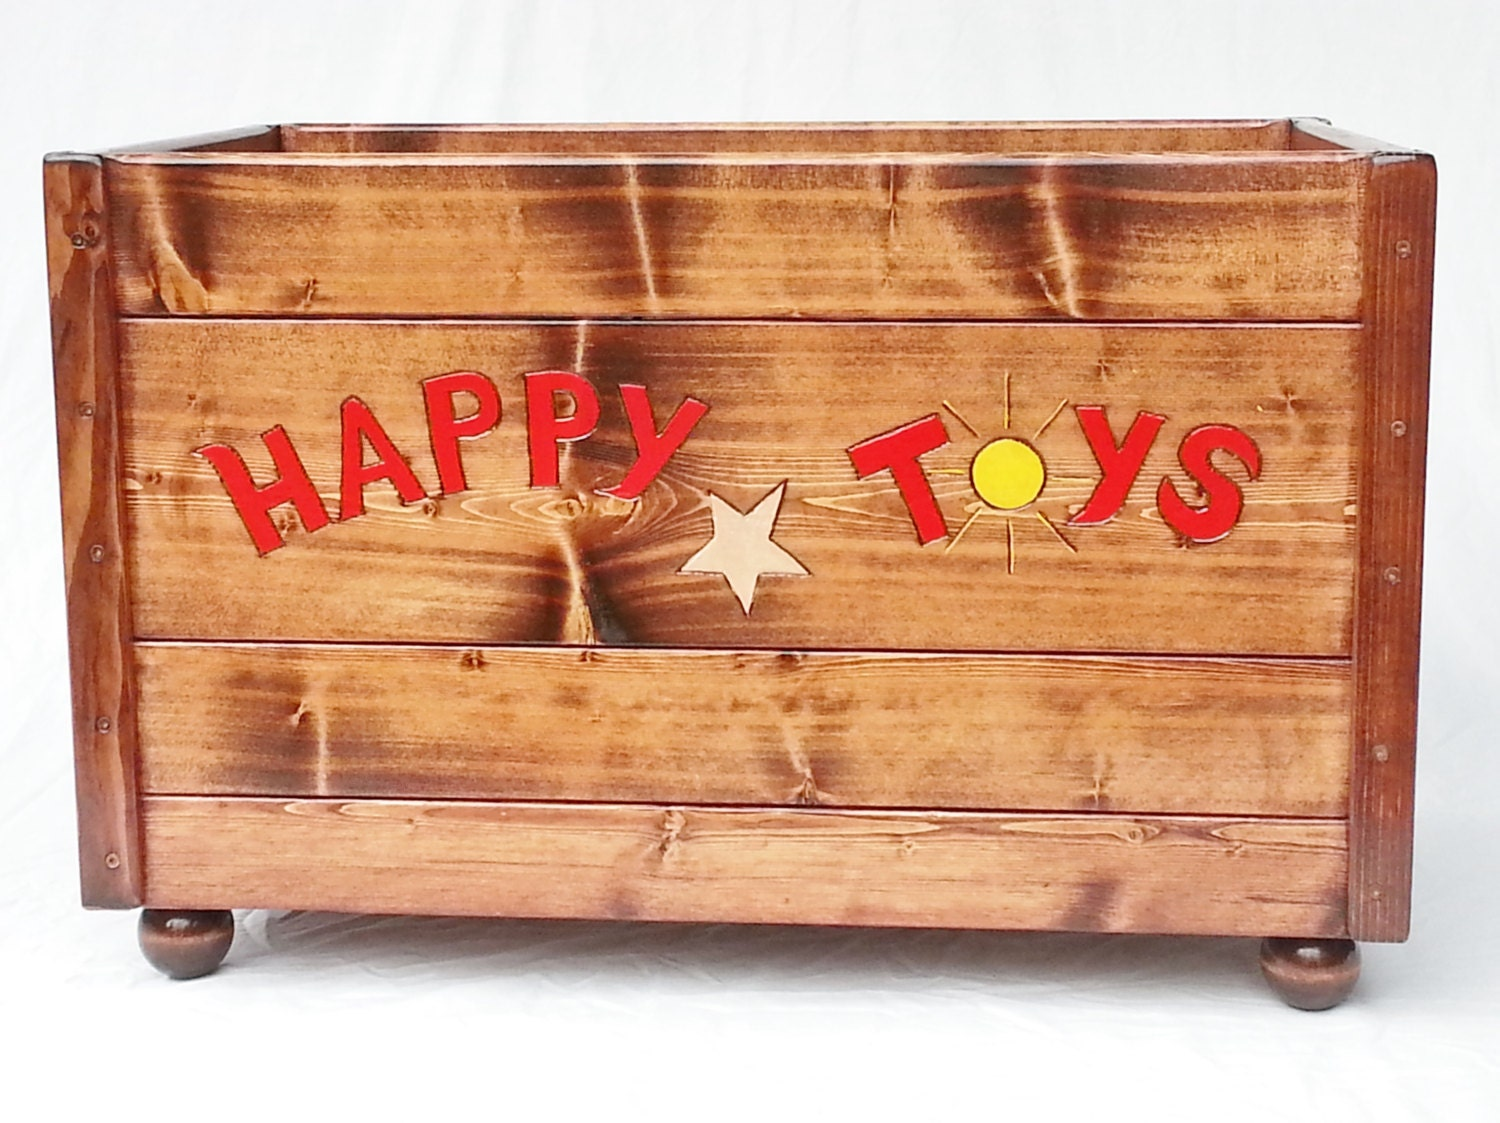 Childrens Jumbo Bedroom Room Tidy Toy Storage Chest Box Trunk: Happy Toy Box Large Wood Storage Chest Kids Toddler Boy